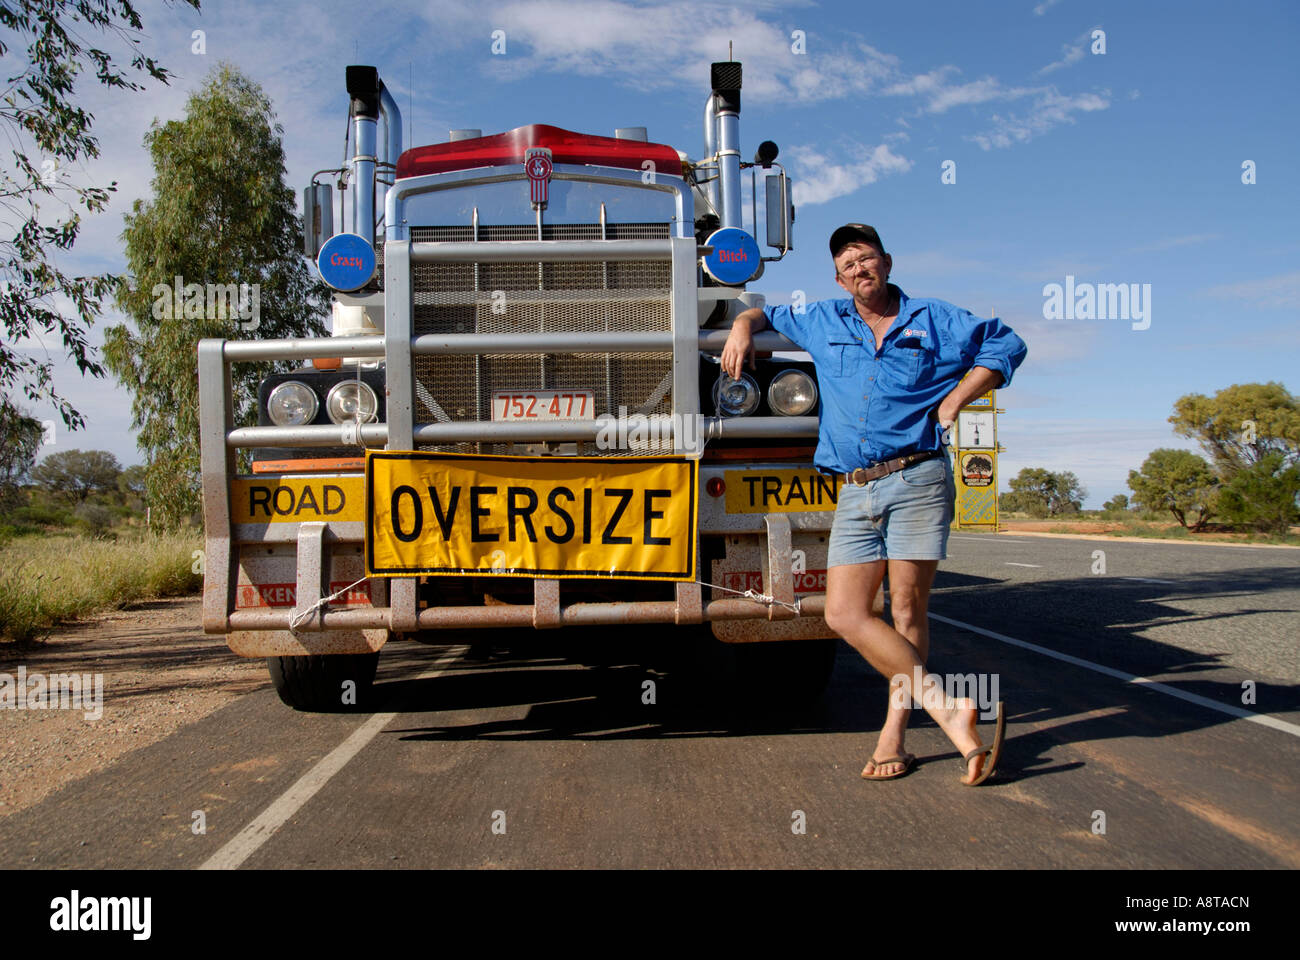 Roadtrain Stock Photos & Roadtrain Stock Images - Alamy